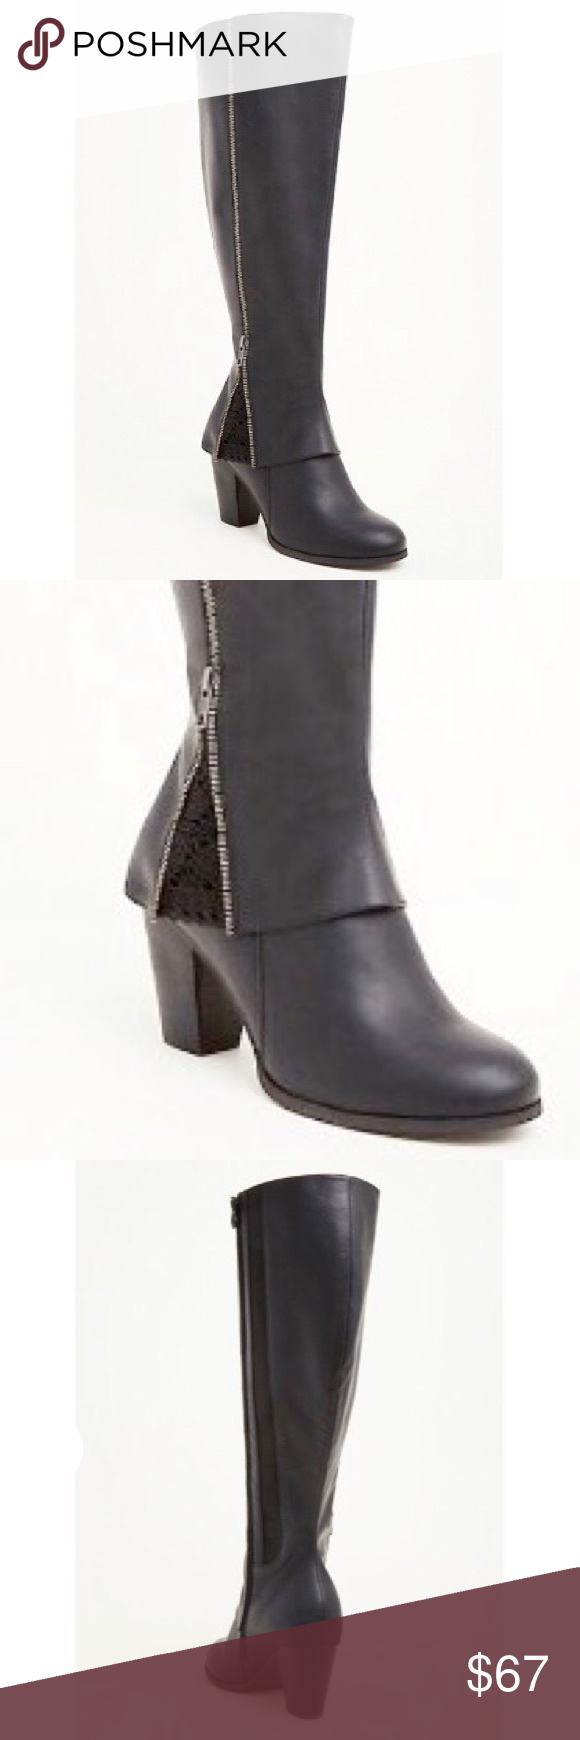 843b2b84903 Torrid crochet embellished Wide Width  amp  calf boots Beautiful and very  unique boots